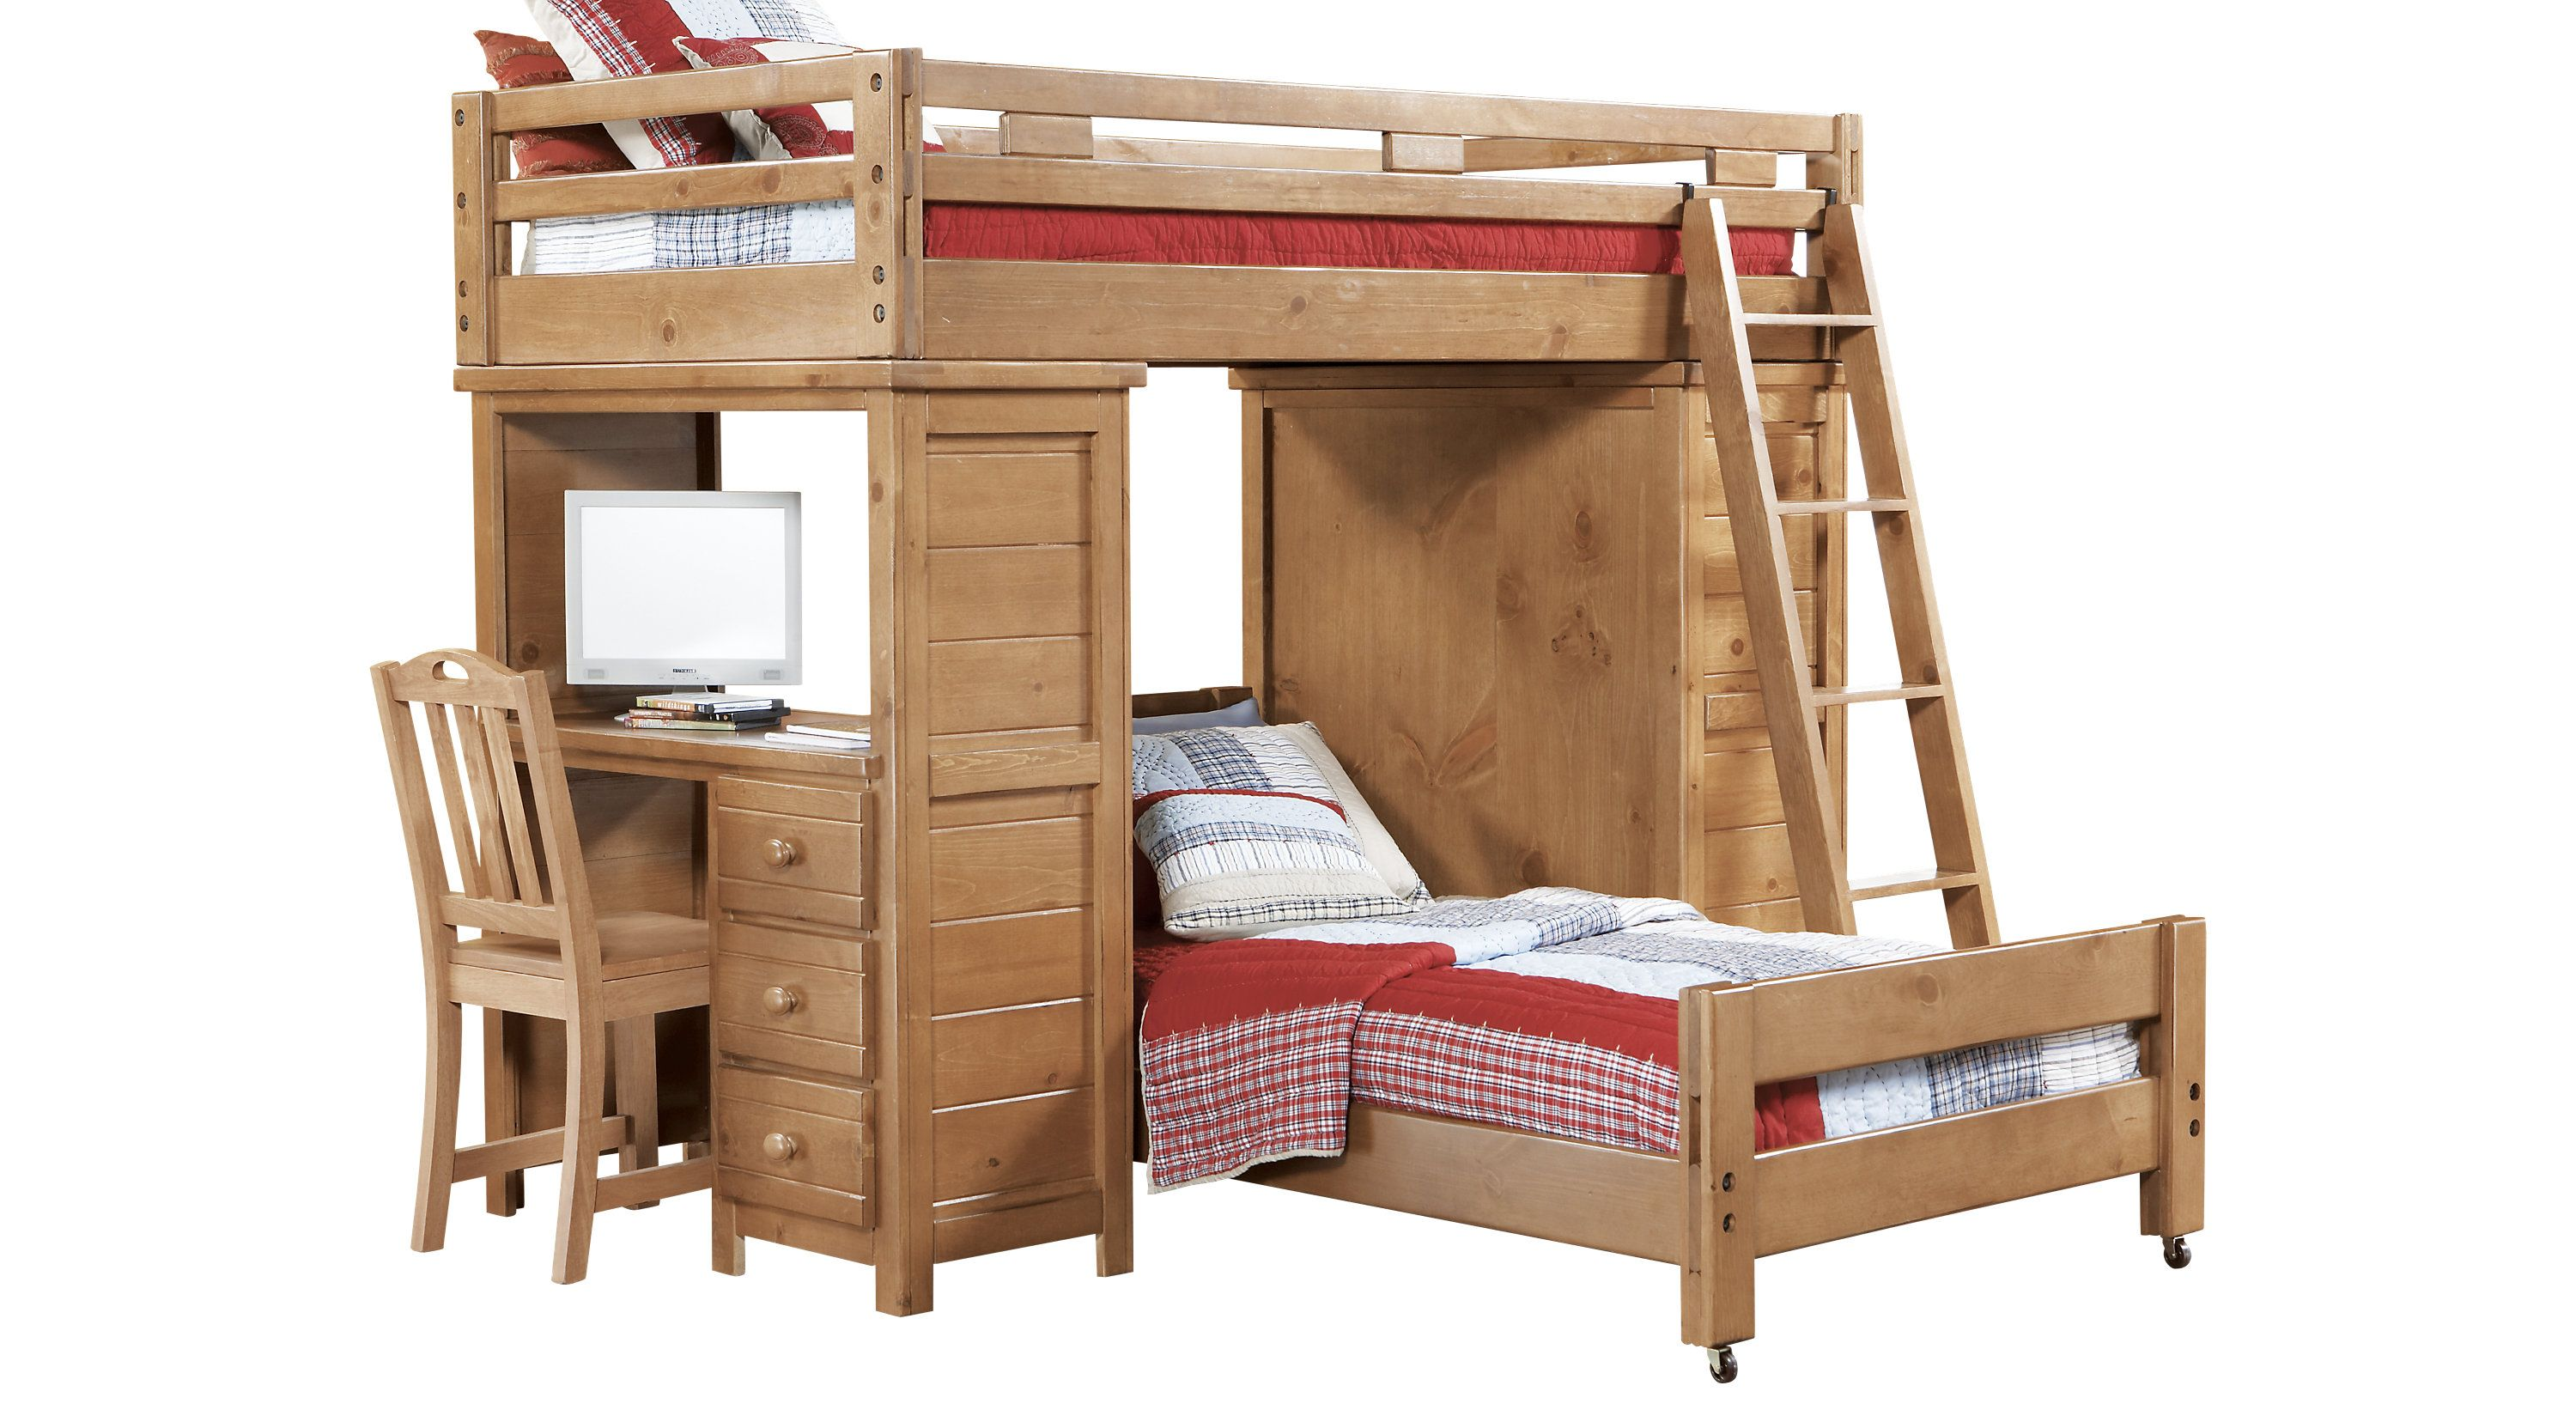 Bunk Bedroom Sets Rooms To Go Creekside Taffy Twin Twin Student Loft Bed W Desk With Chest 3619206p Bunk Bed Designs Bunk Bed With Desk Childrens Loft Beds